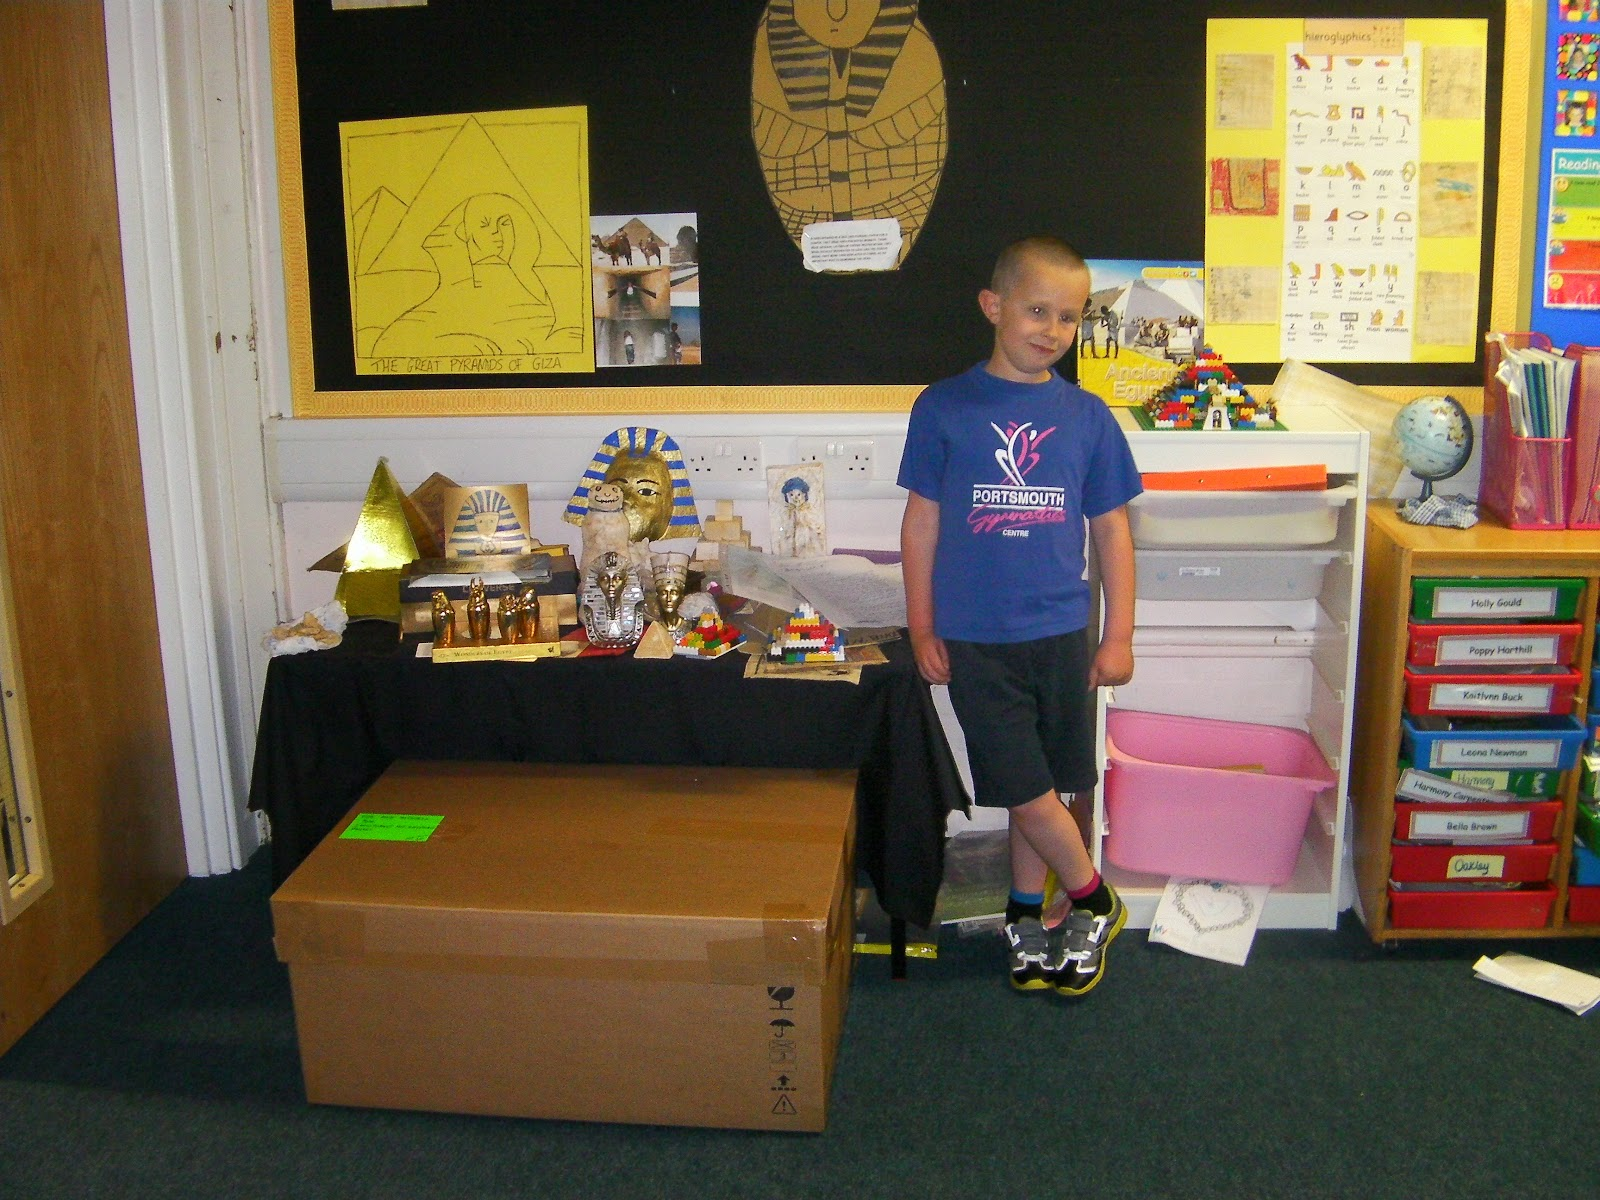 rameses pharoahs head pyramids scarabs school class project on egyptians